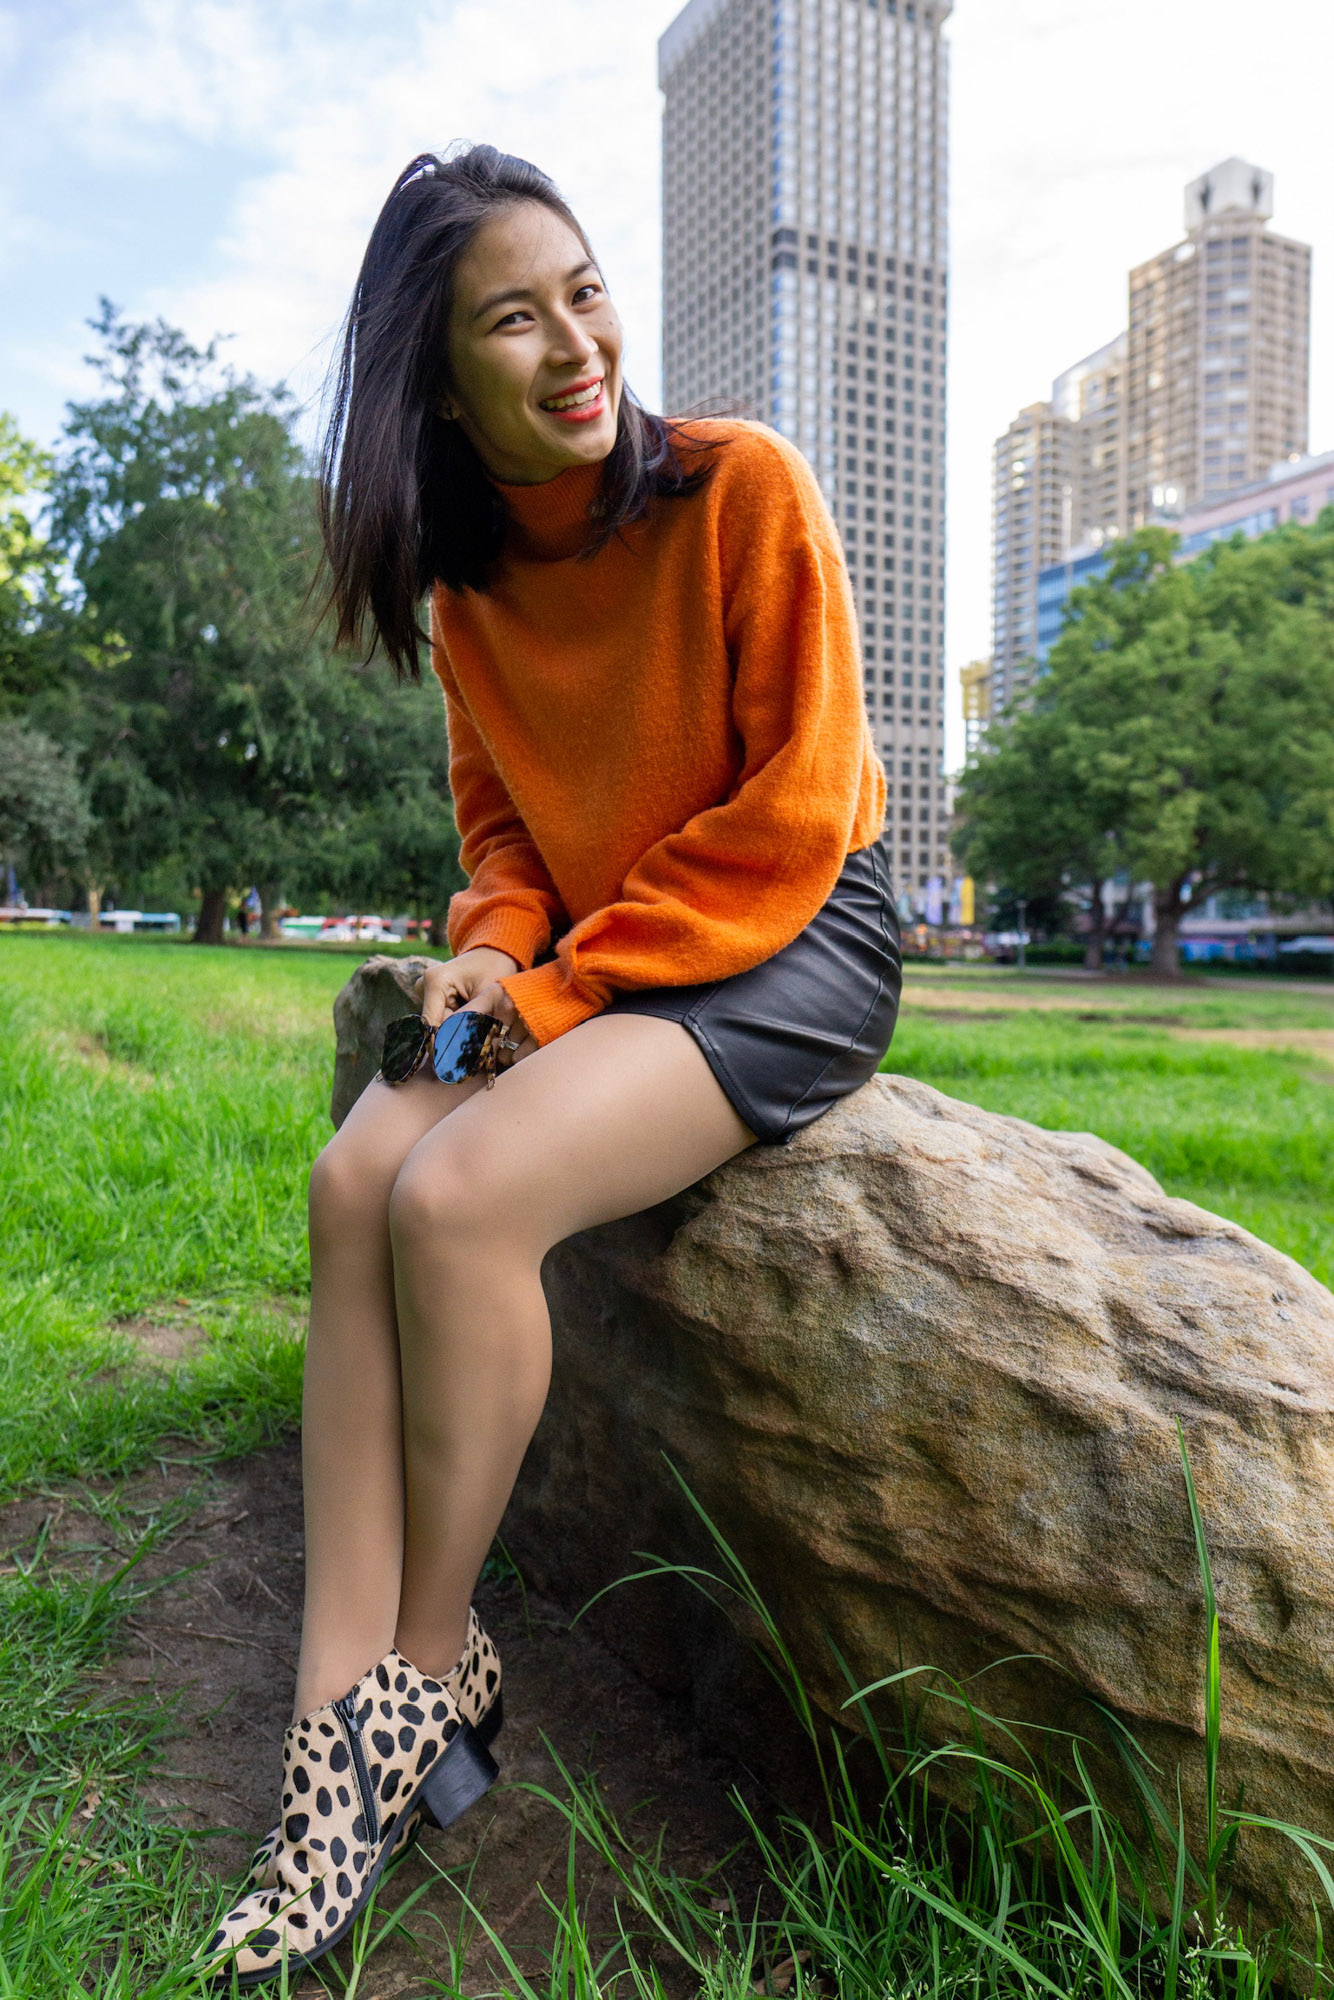 A woman with short dark hair, sitting on a large rock. She is wearing a bright orange sweater and a black skirt. She is in a park and there are skyscrapers behind her.